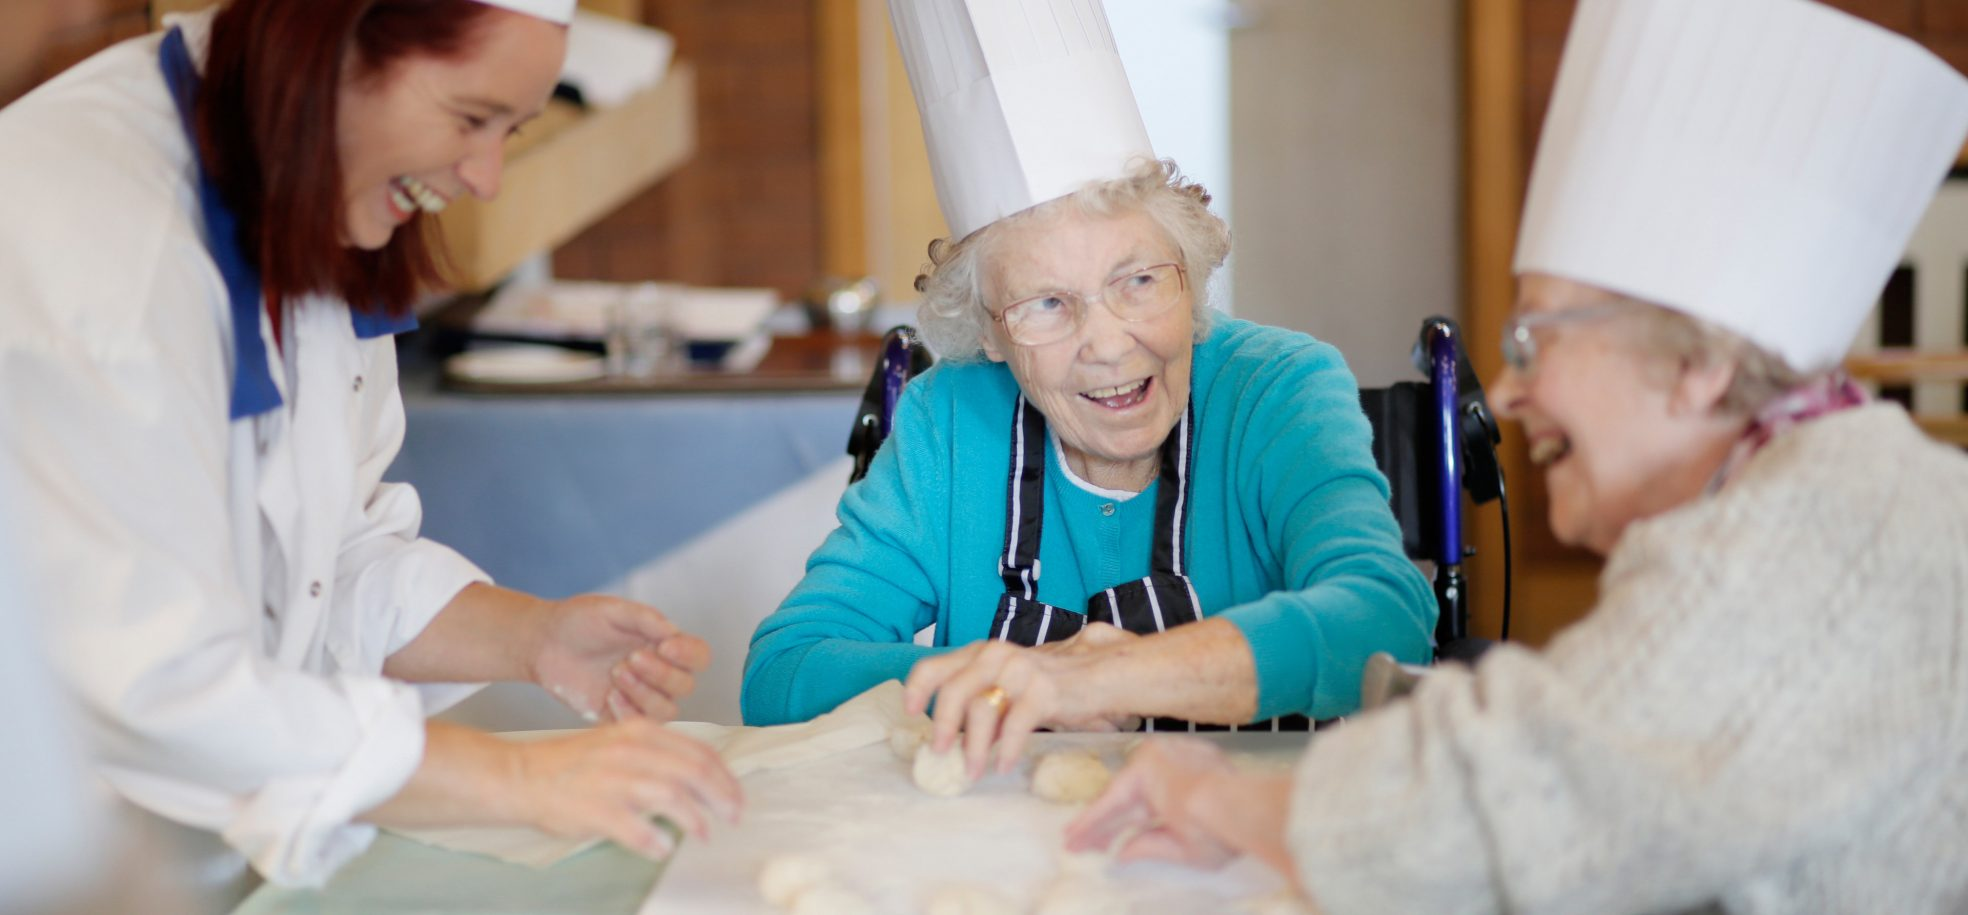 Residents enjoy baking at Cadogan Court